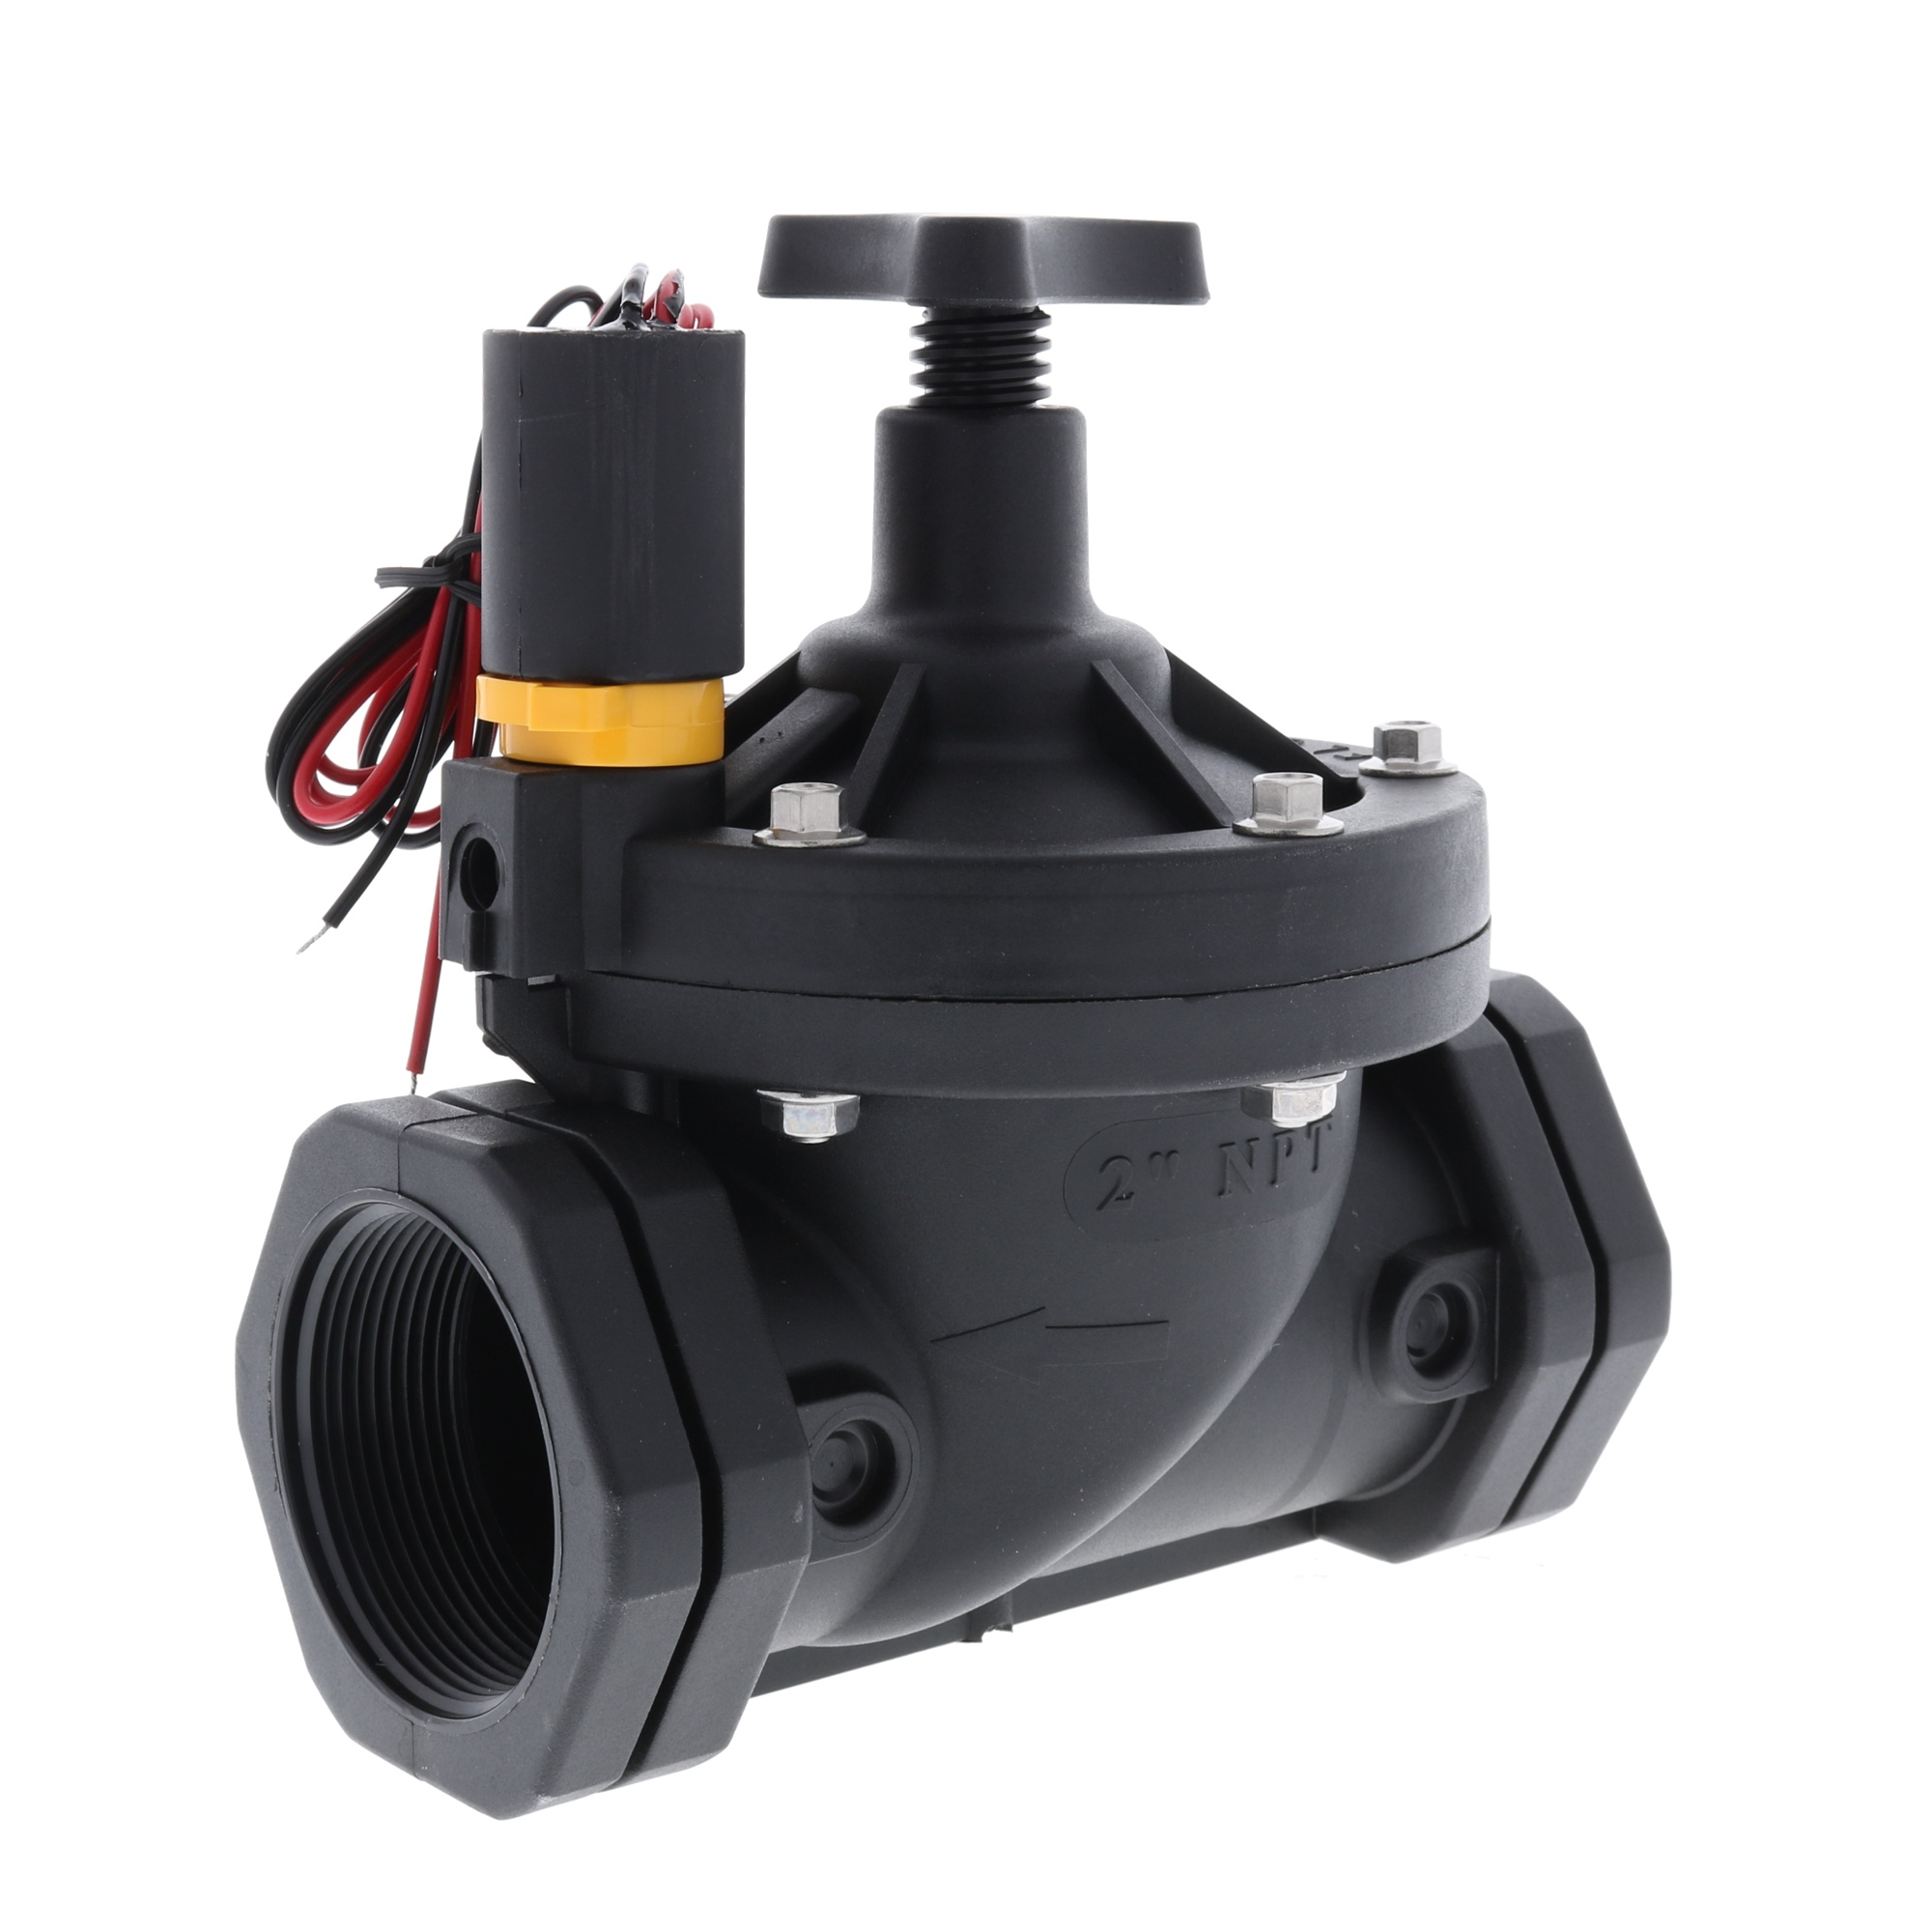 Galcon Irrigation Valve with DC Latching Solenoid - Size : 2